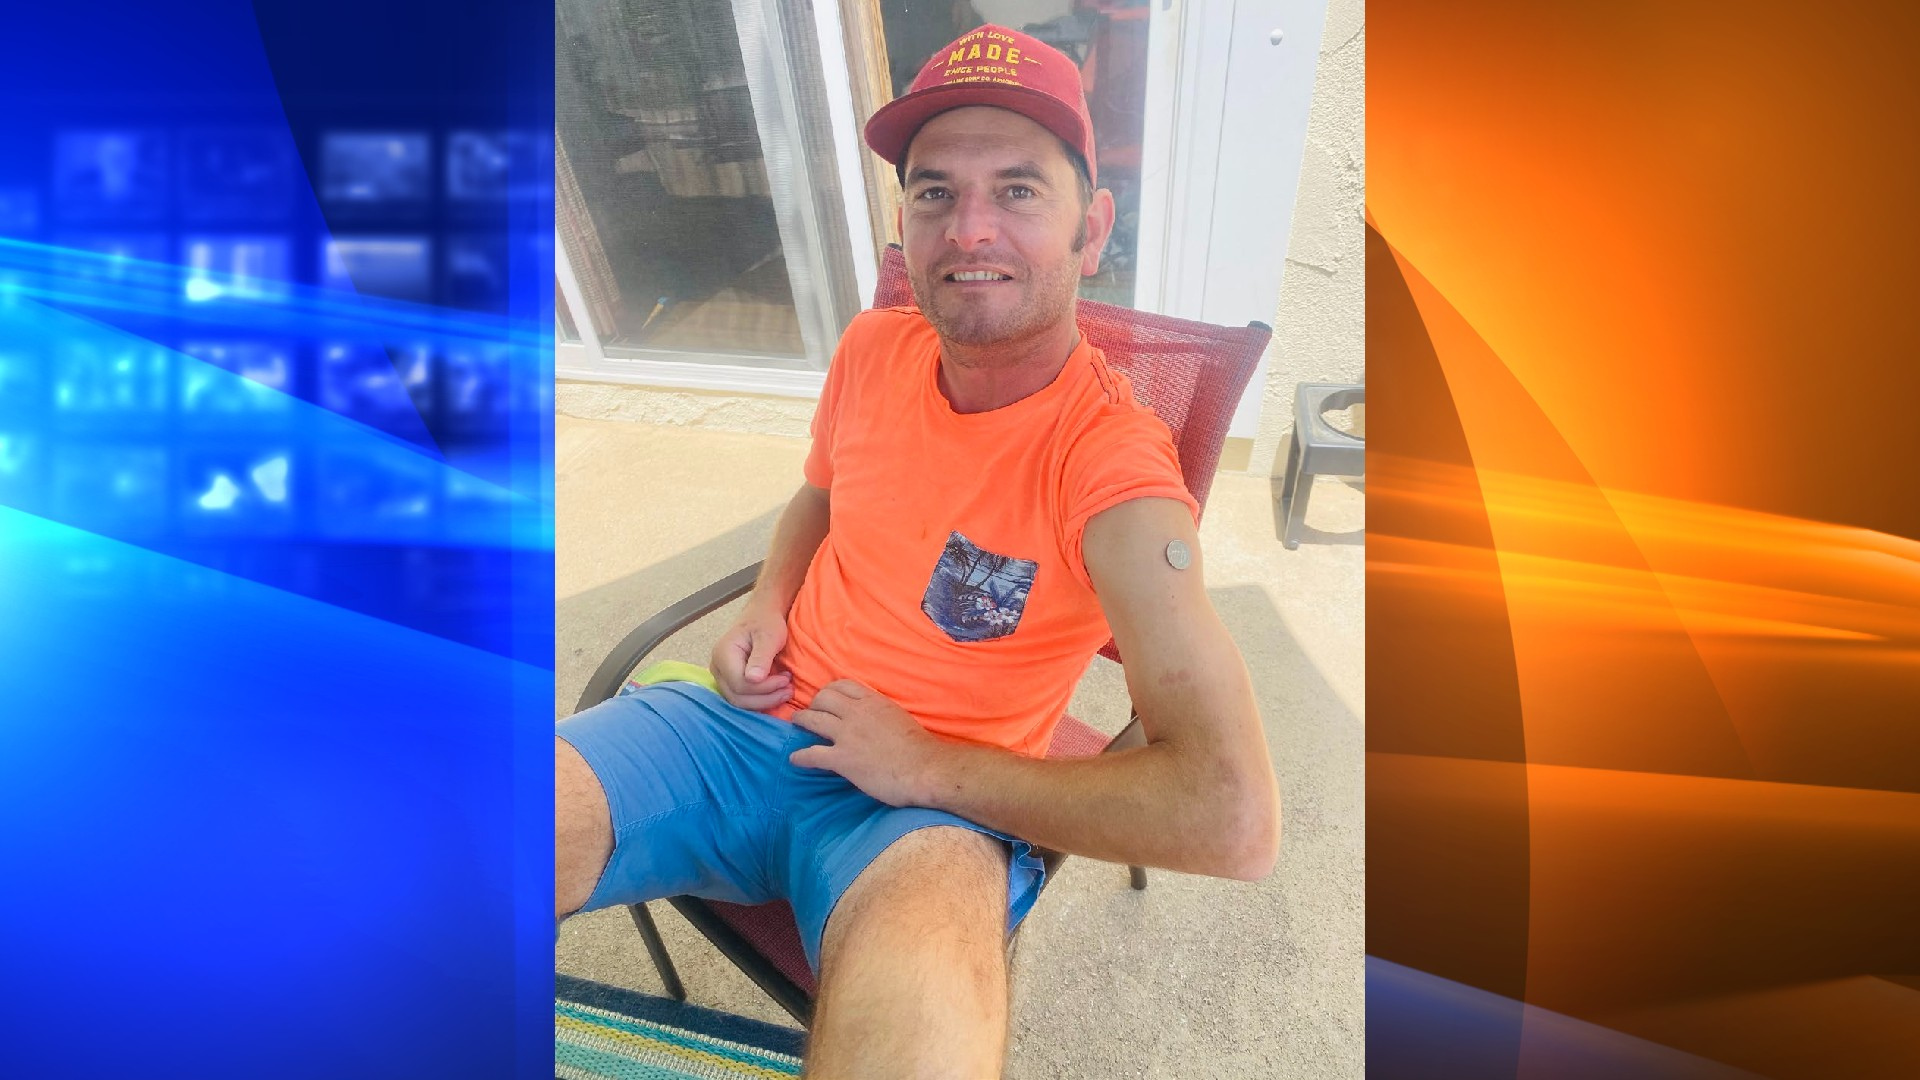 Matt Thoke, 43, of Newport Beach, was last seen on Wednesday, July 21 while hiking at Sequoia National Park.